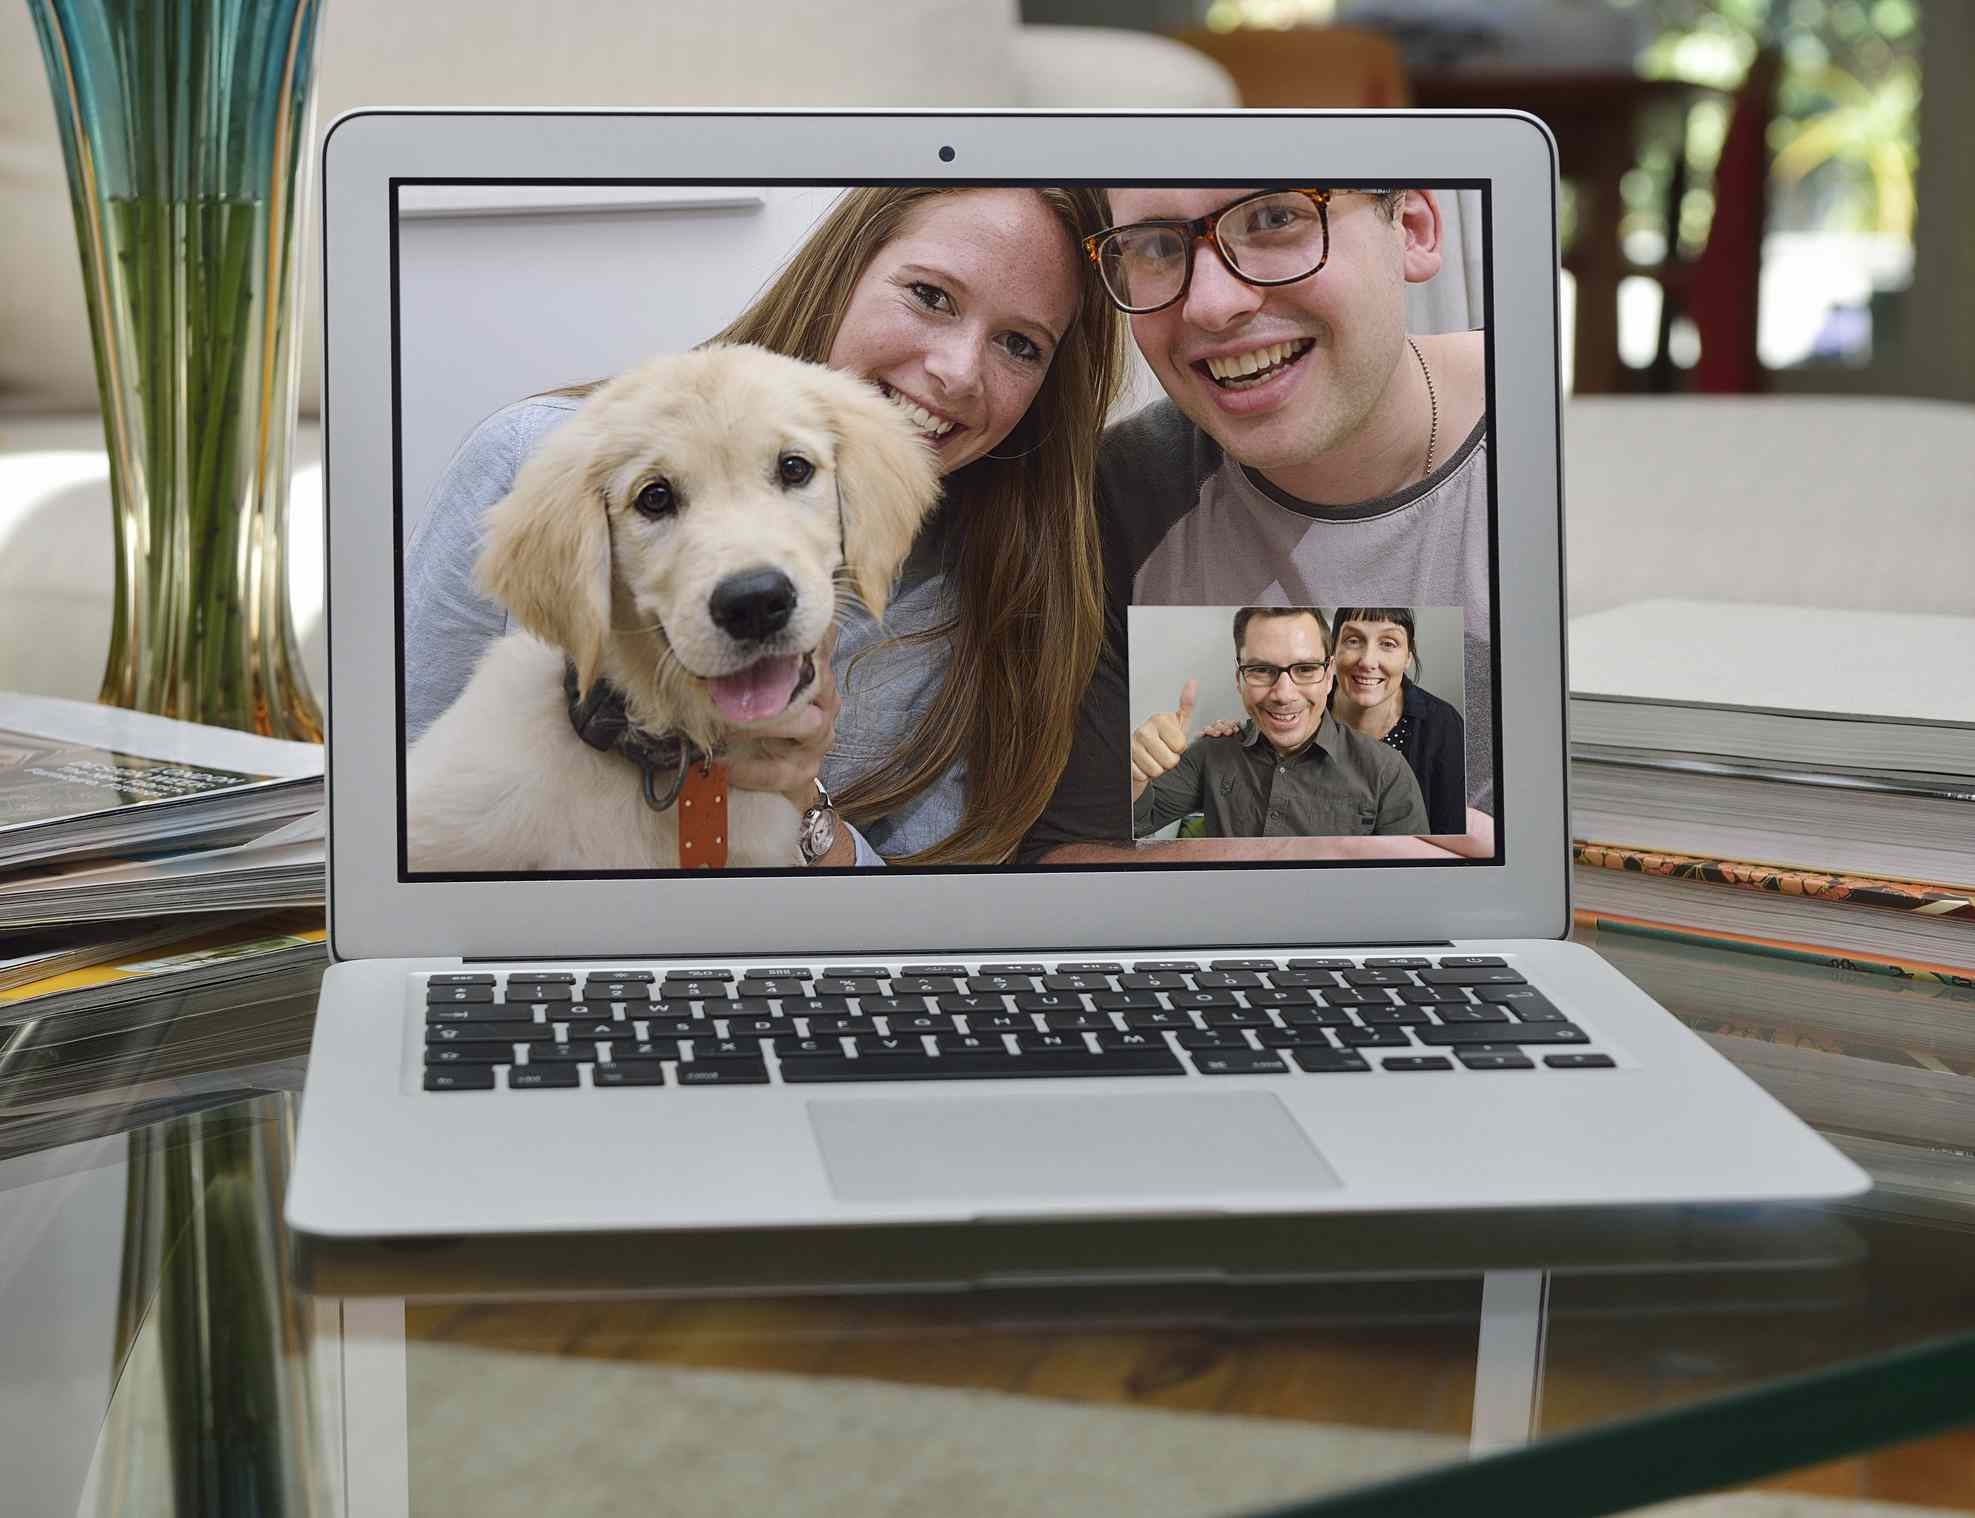 Couple showing off a new puppy over Skype free video chat service